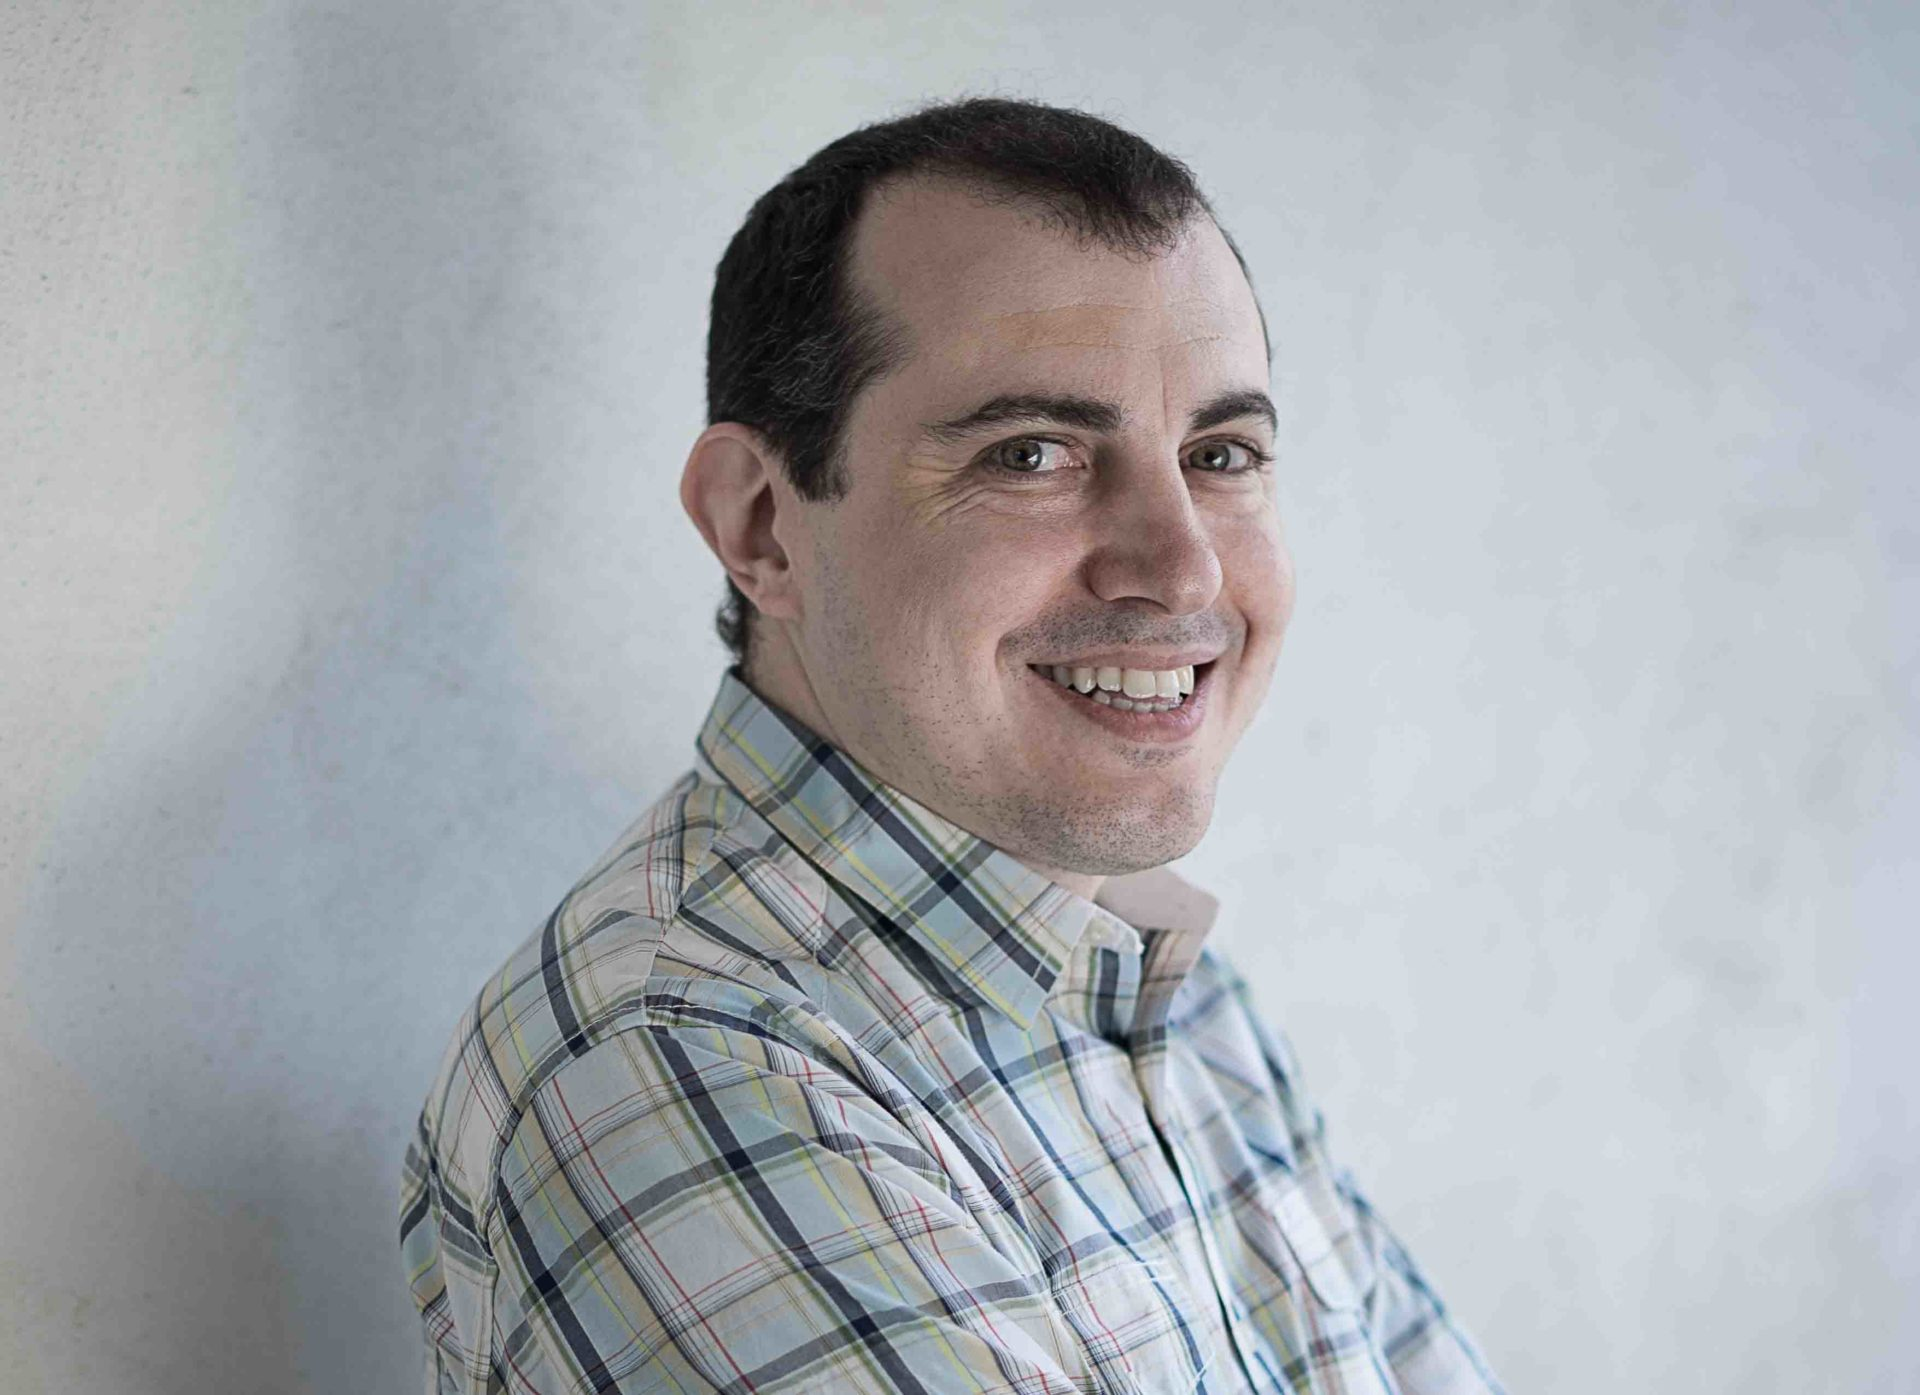 segwit Ethereum andreas antonopoulos